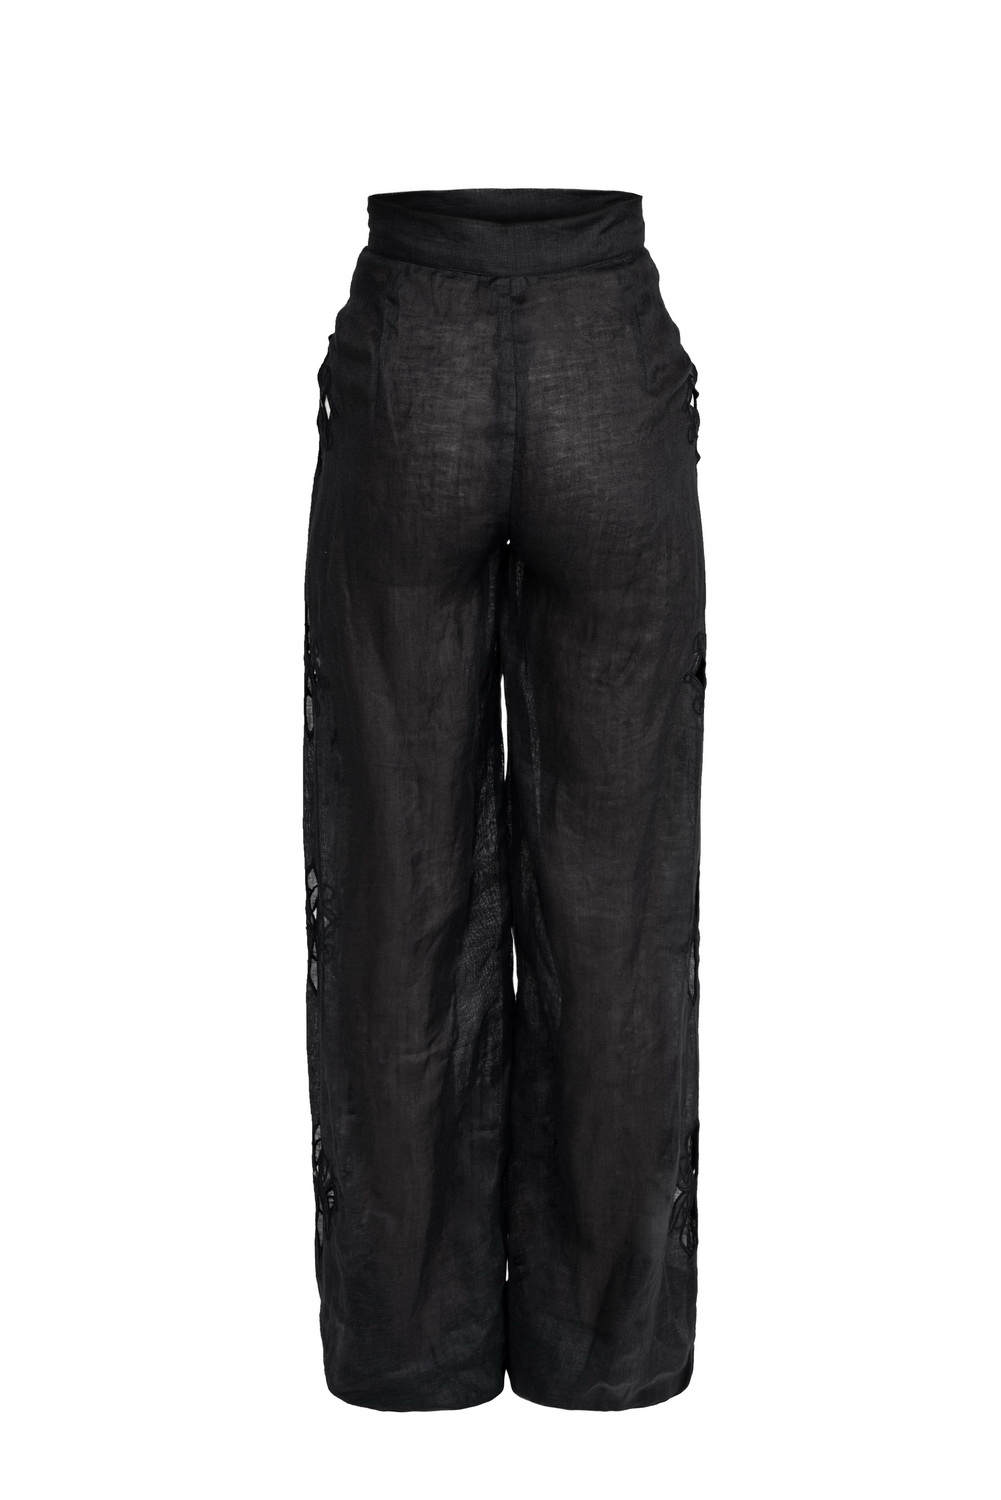 Embroidered Pants by Atelier Handmade on curated-crowd.com